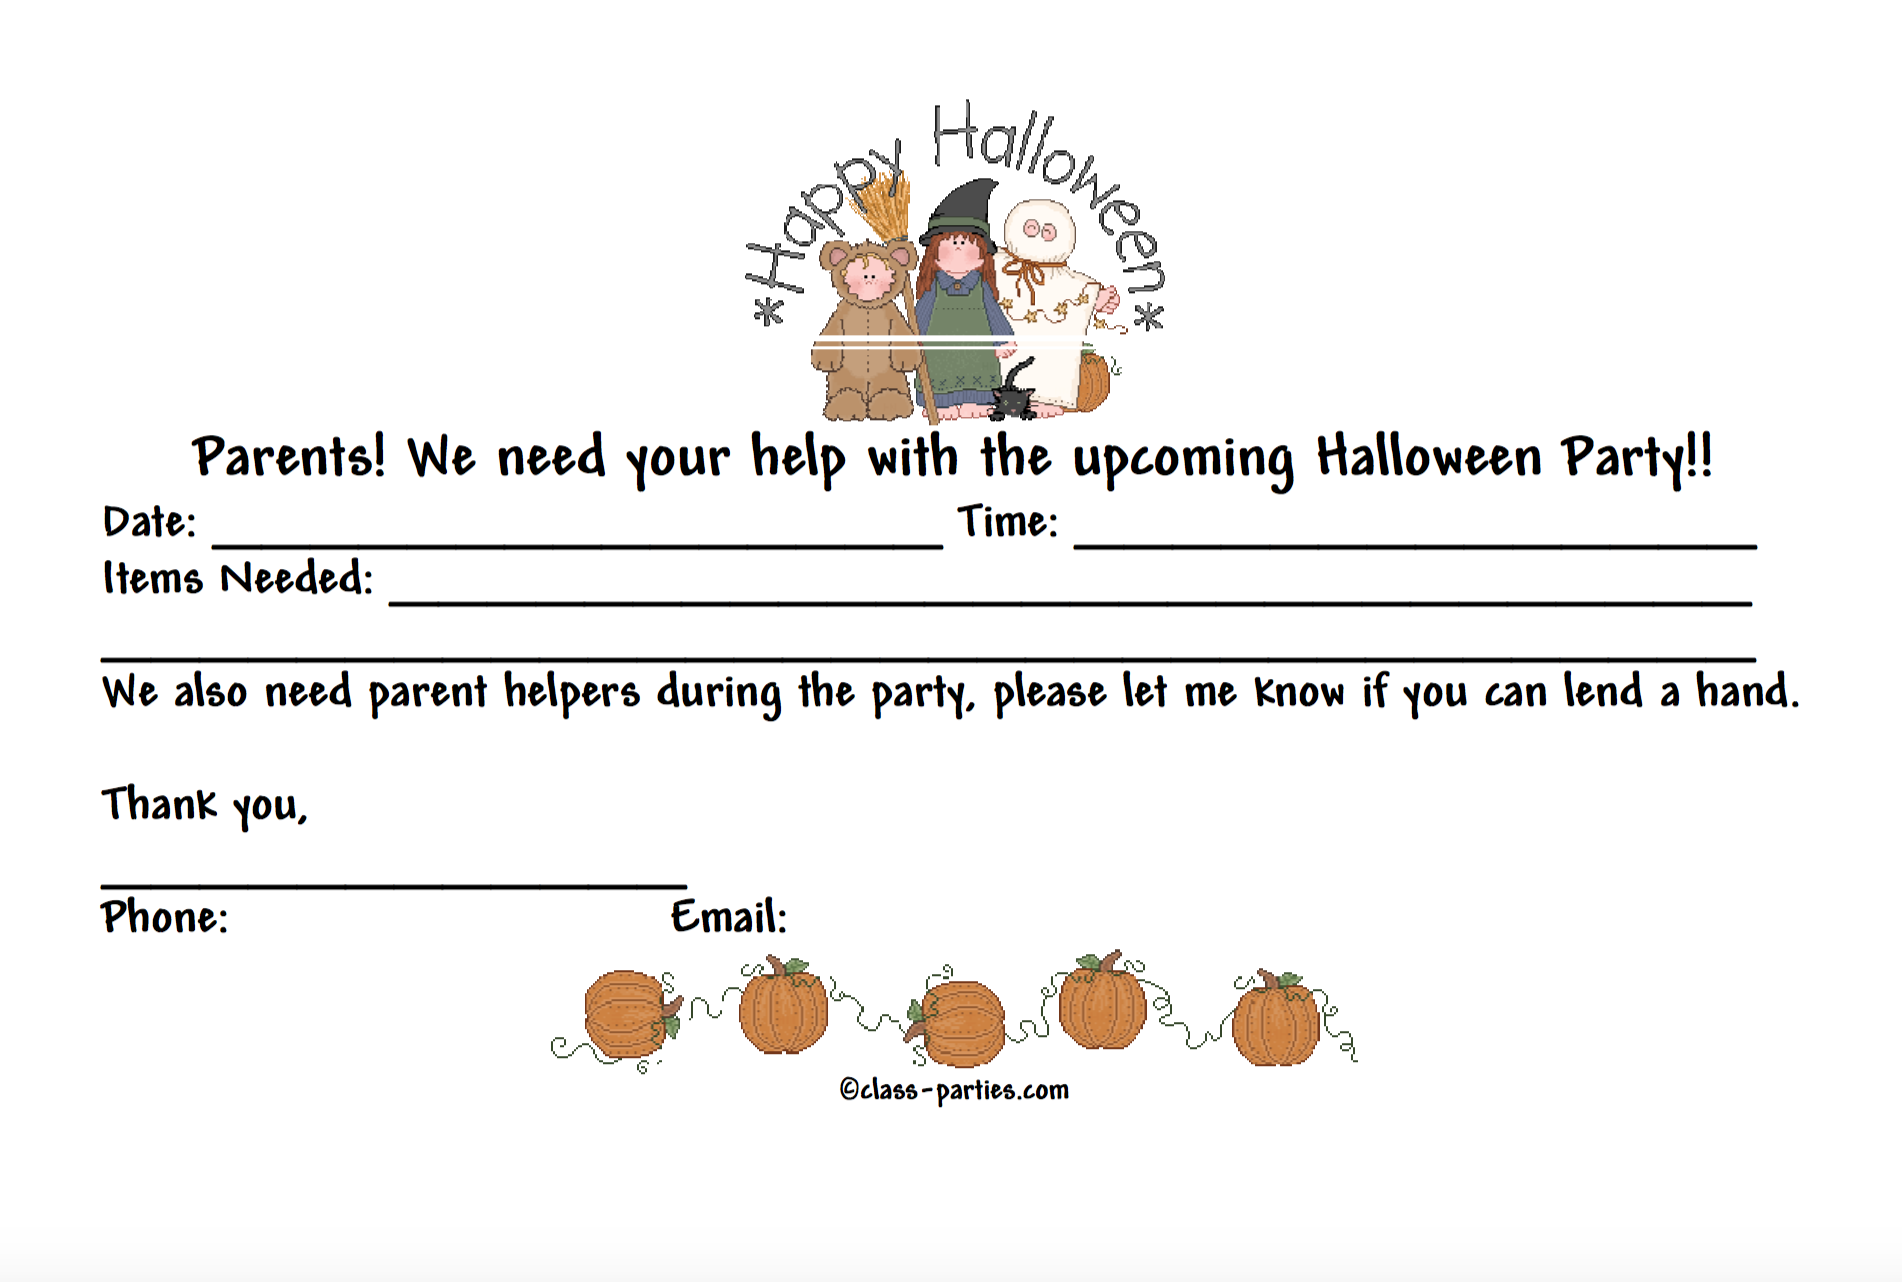 Ask Parents To Help Out At The Halloween Event With This Volunteer